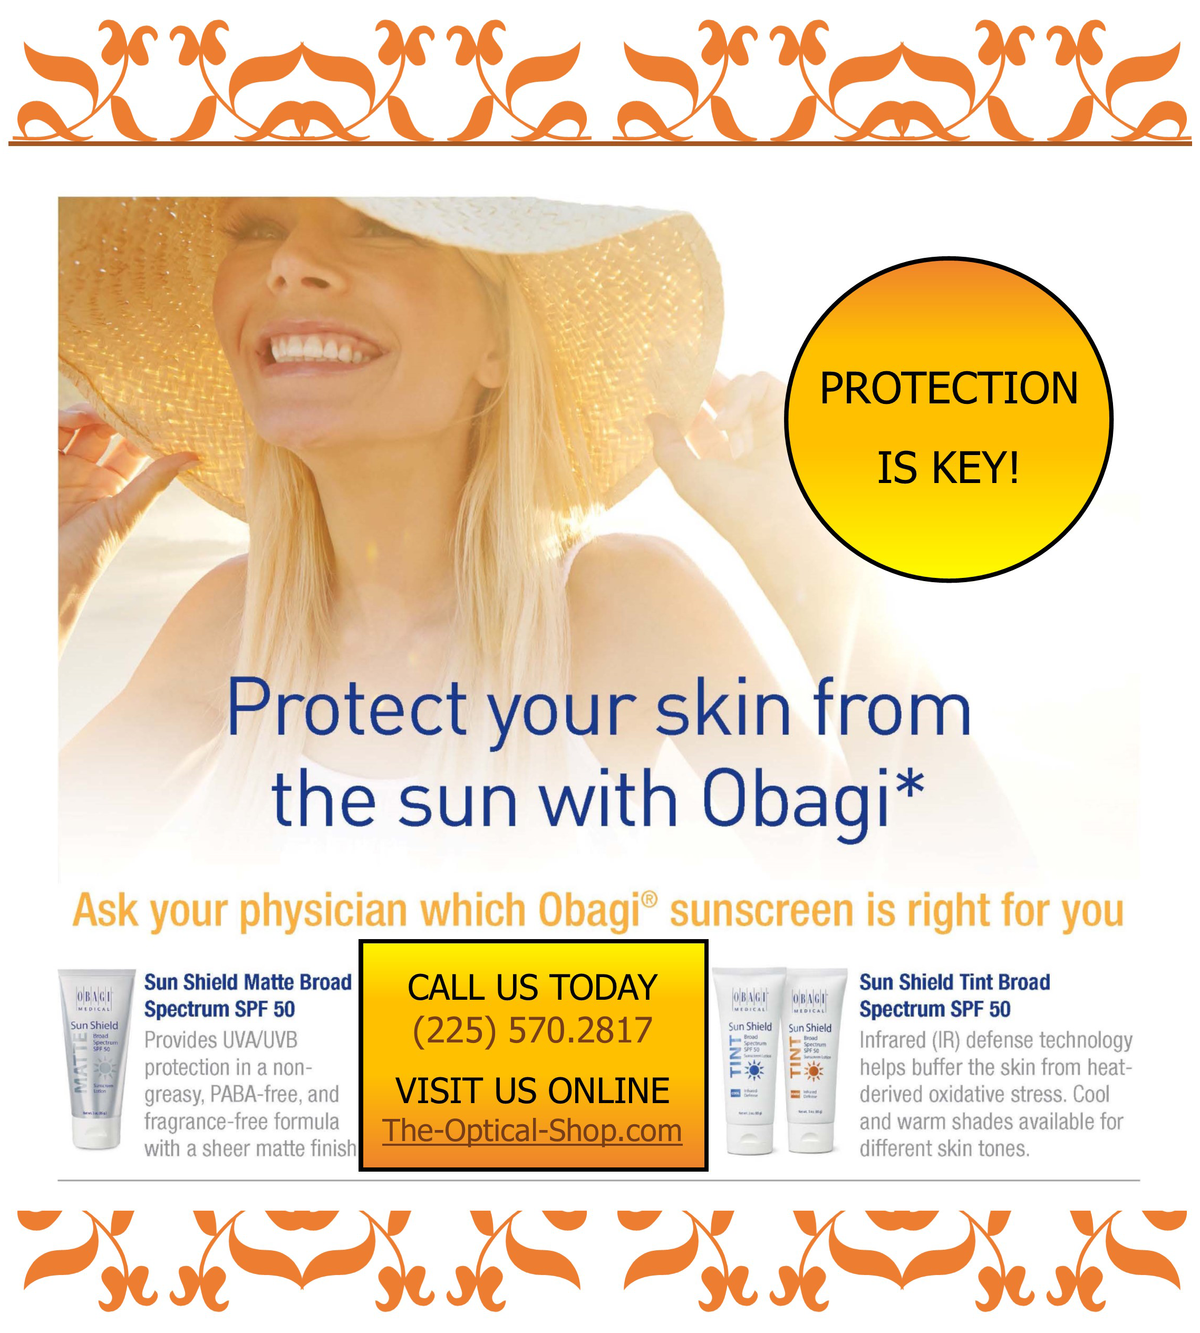 Protection With OBAGI!